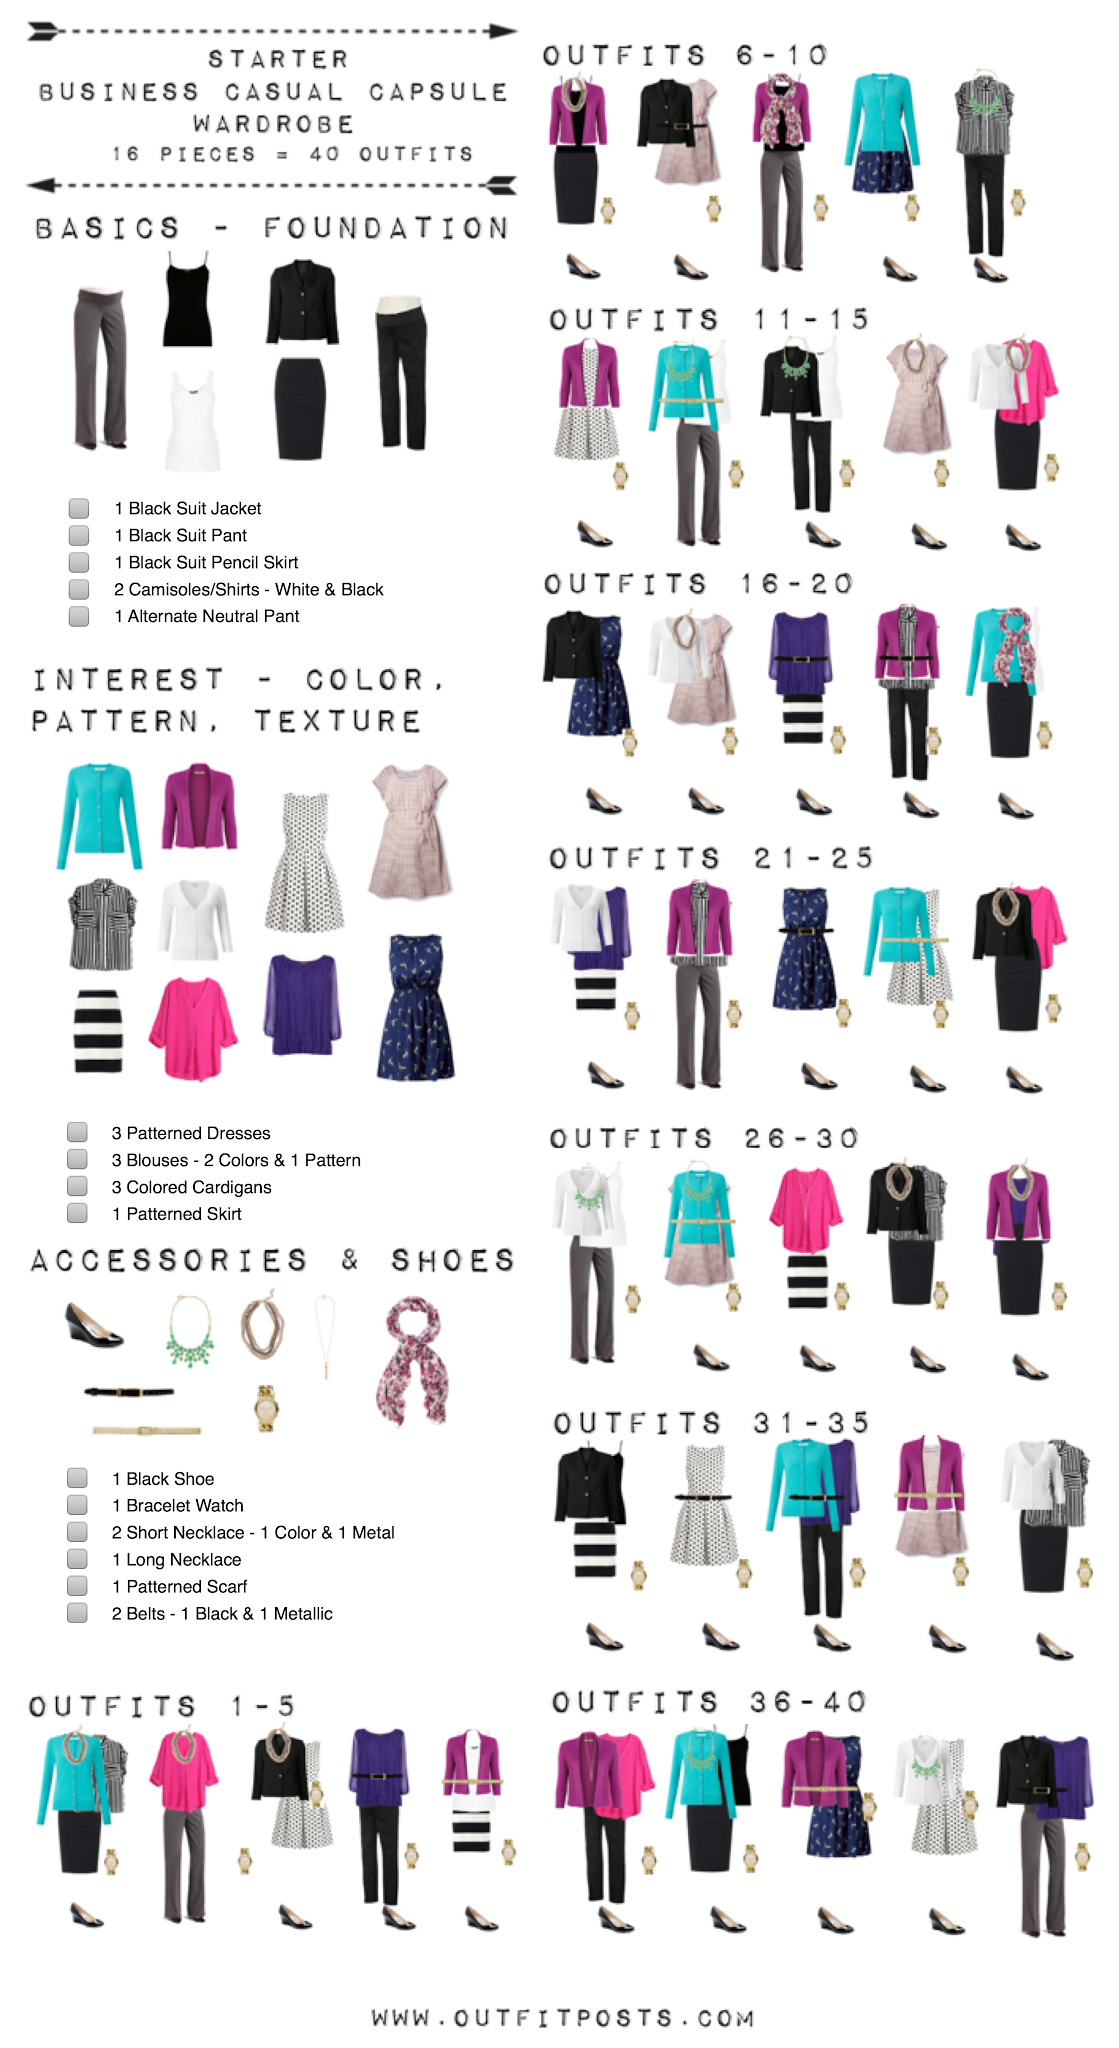 Starter business casual capsule wardrobe checklist heres how i put together my starter business capsule wardrobe pronofoot35fo Image collections